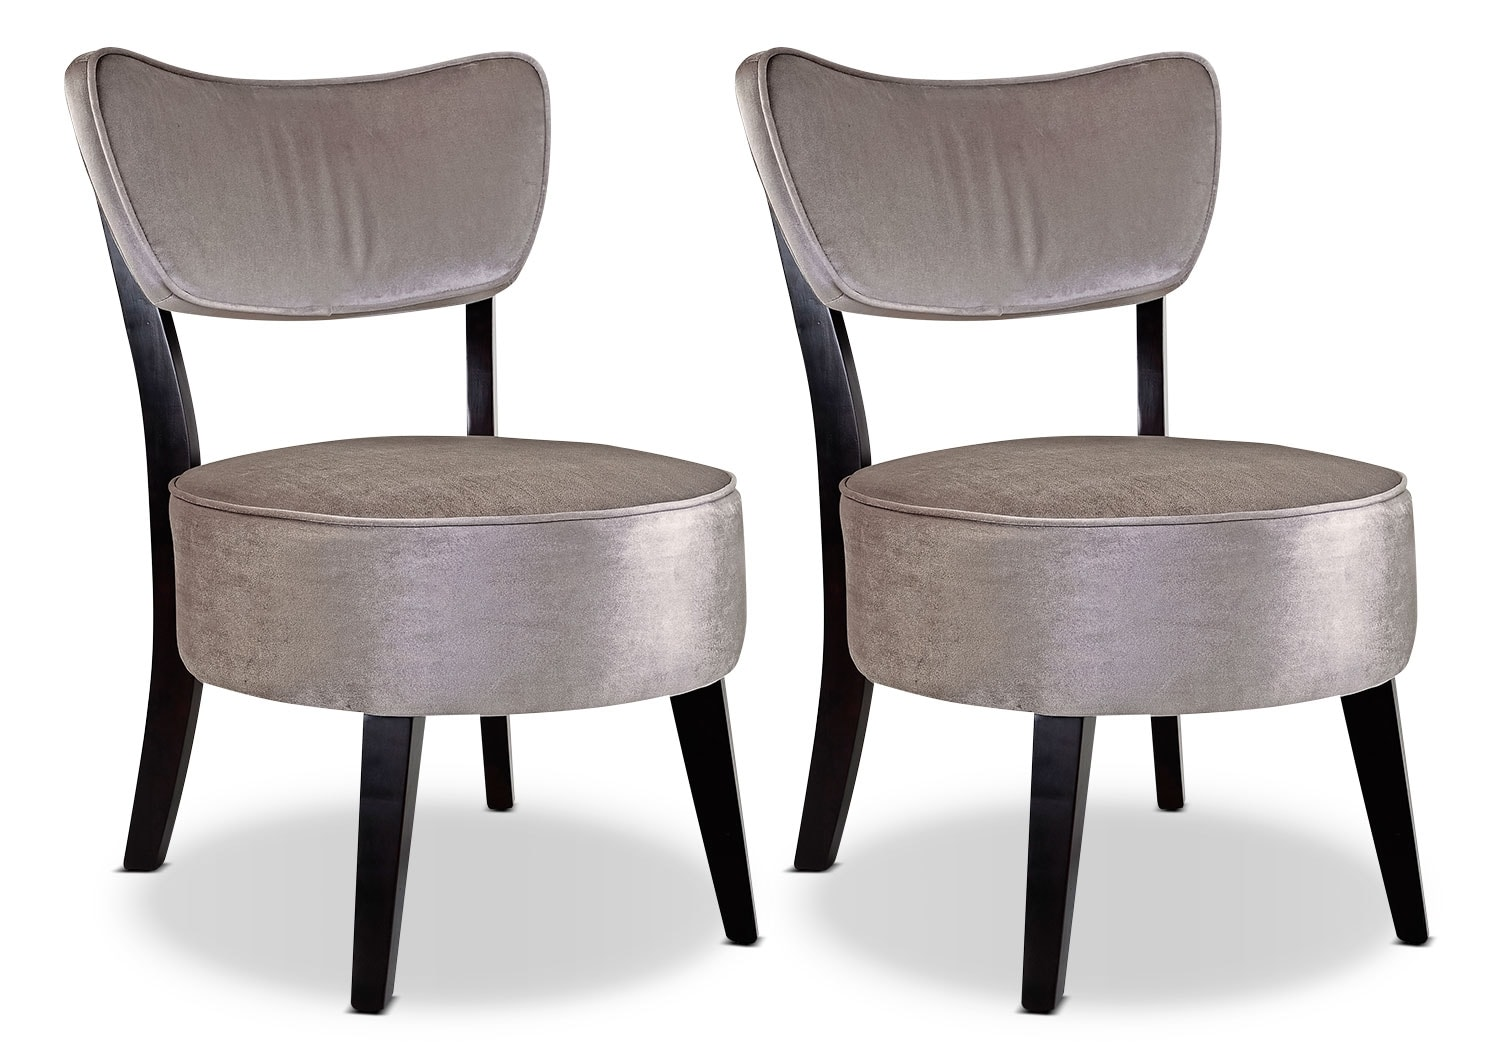 LAD Velvet Fabric Armless Accent Chairs, Set of 2 – Soft Grey